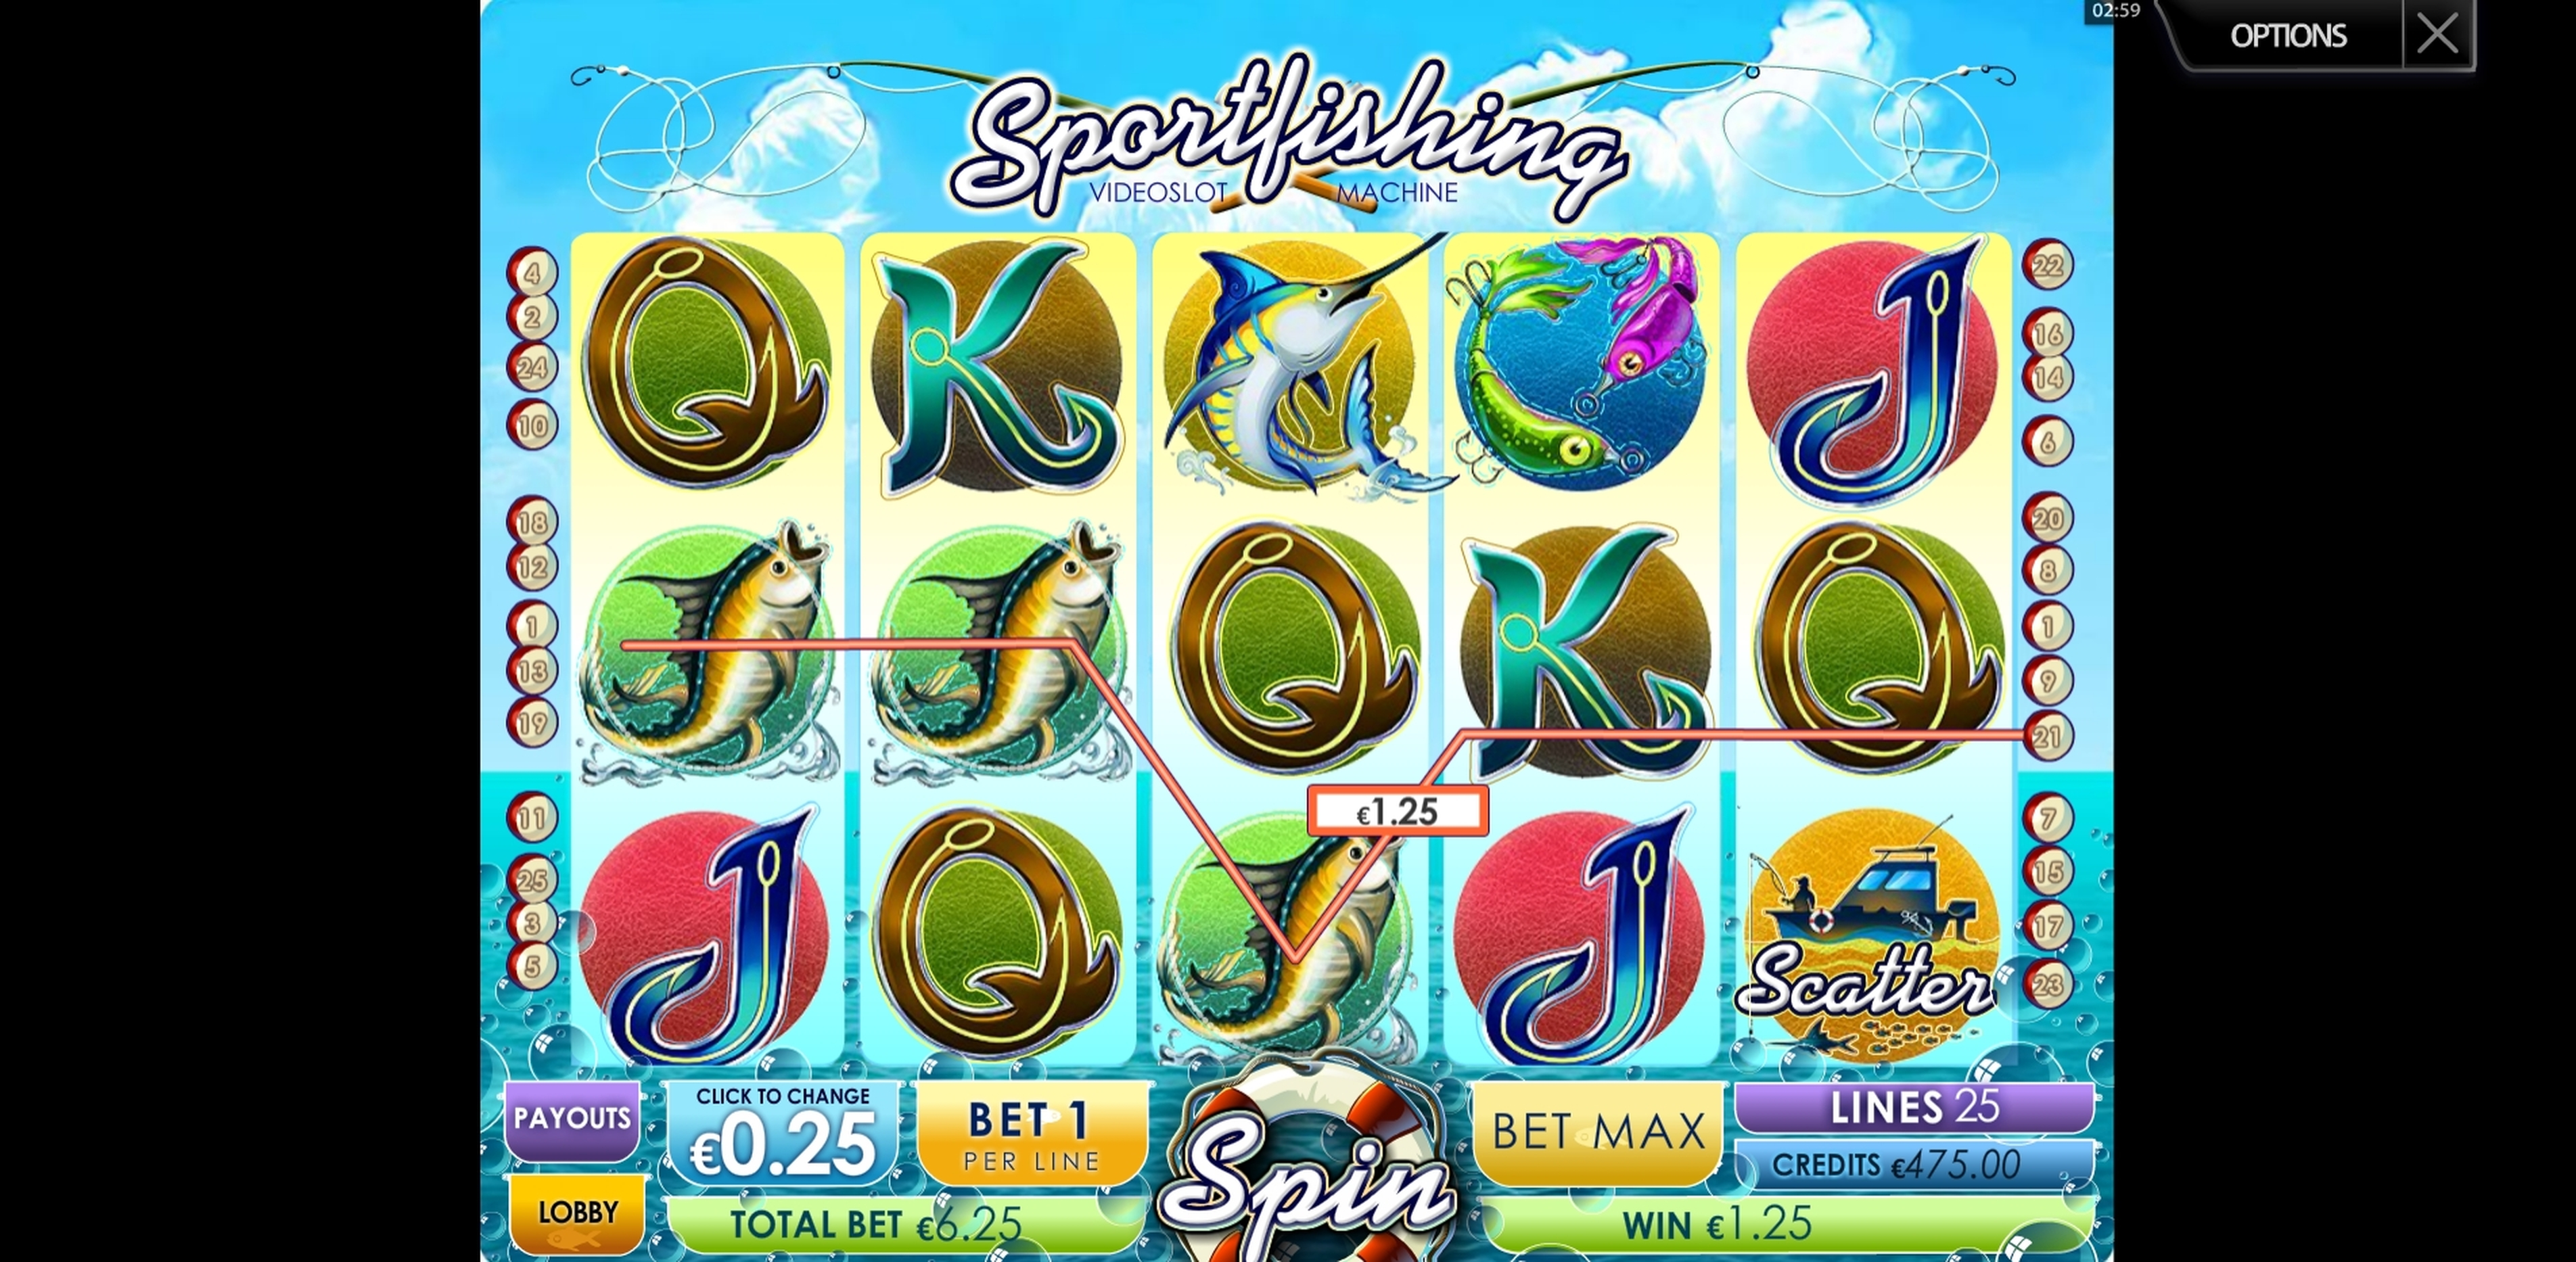 Win Money in Sportsfishing Free Slot Game by Multislot